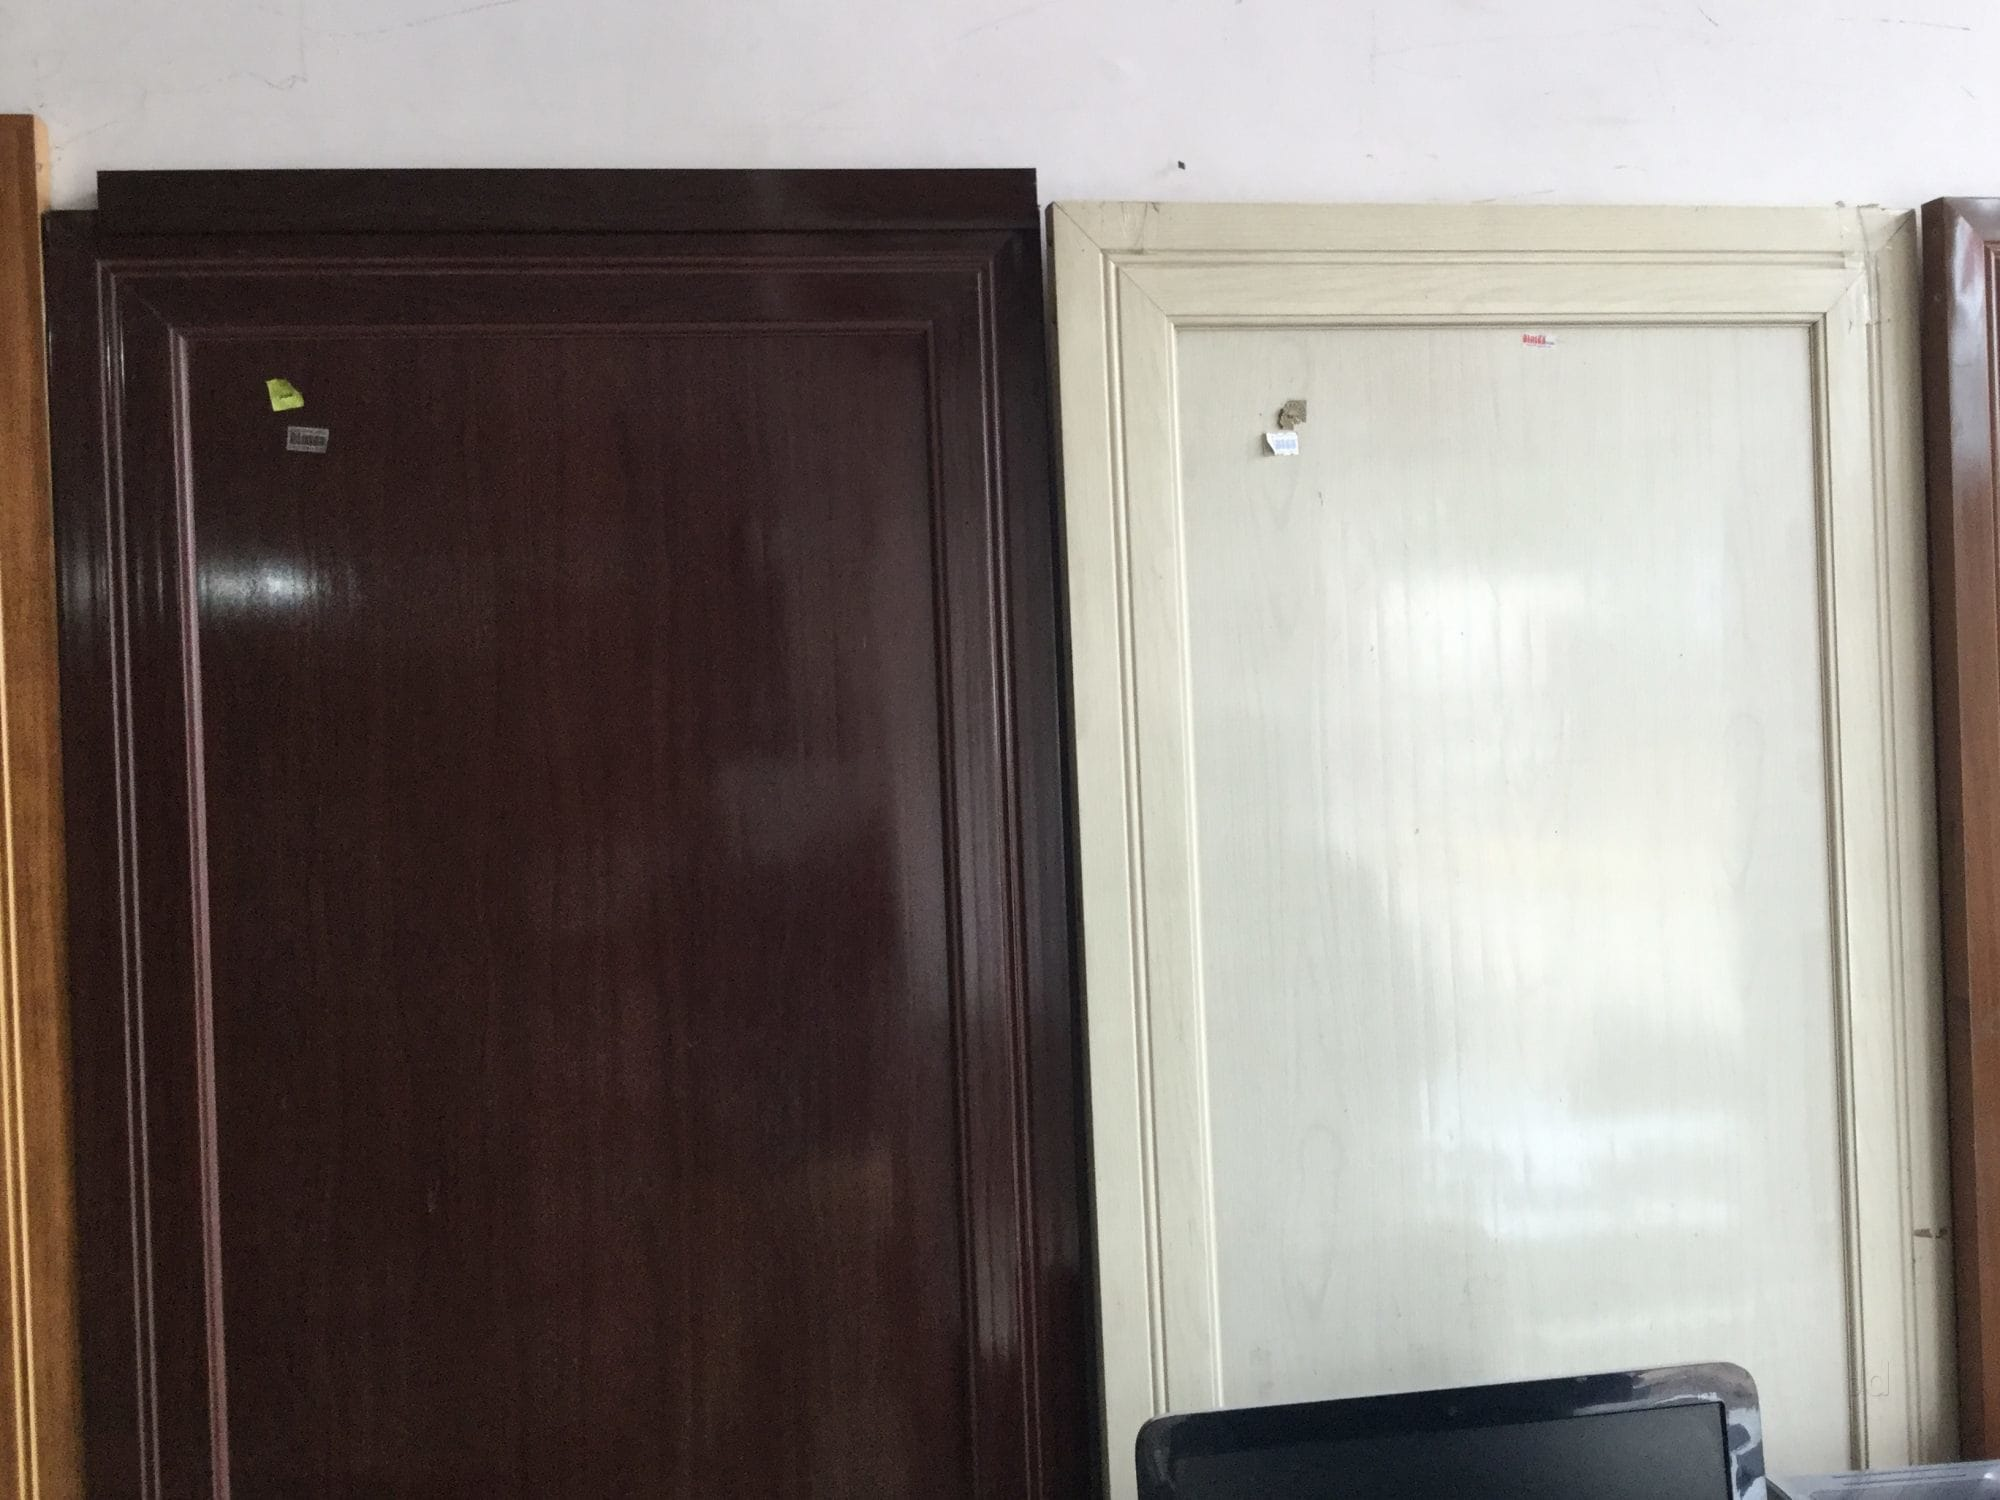 Sintex Door Dealers in Raipur-Chhattisgarh & Top 100 Sintex Door Dealers in Raipur-Chhattisgarh - Best Sintex ...